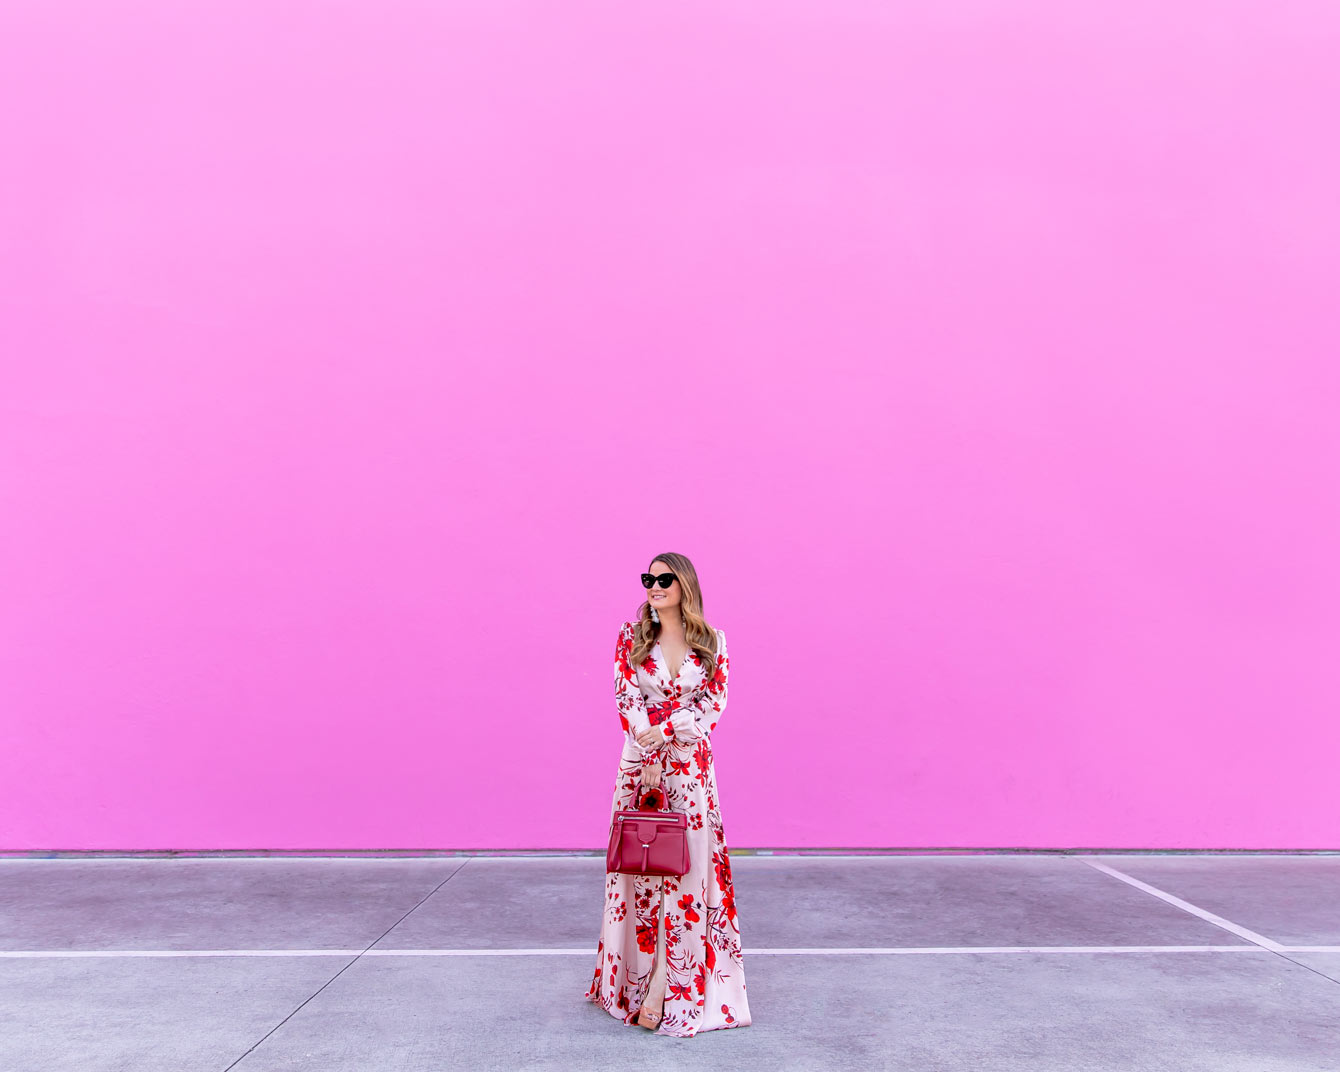 Los Angeles Instarammable Pink Wall